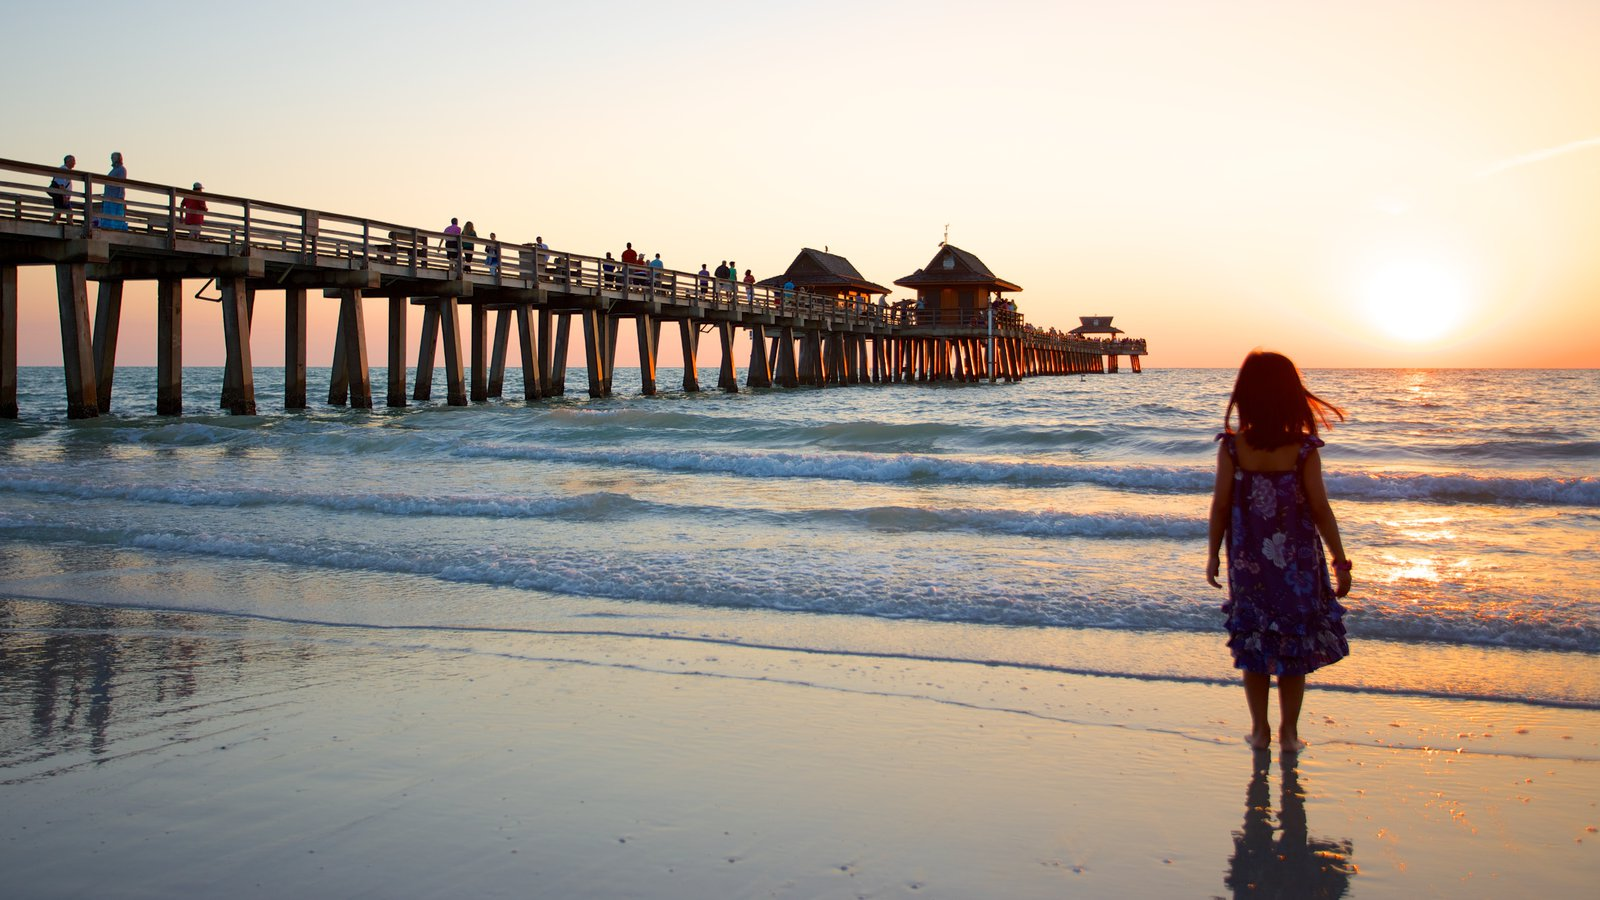 Naples Pier showing a sunset and a sandy beach as well as an individual child